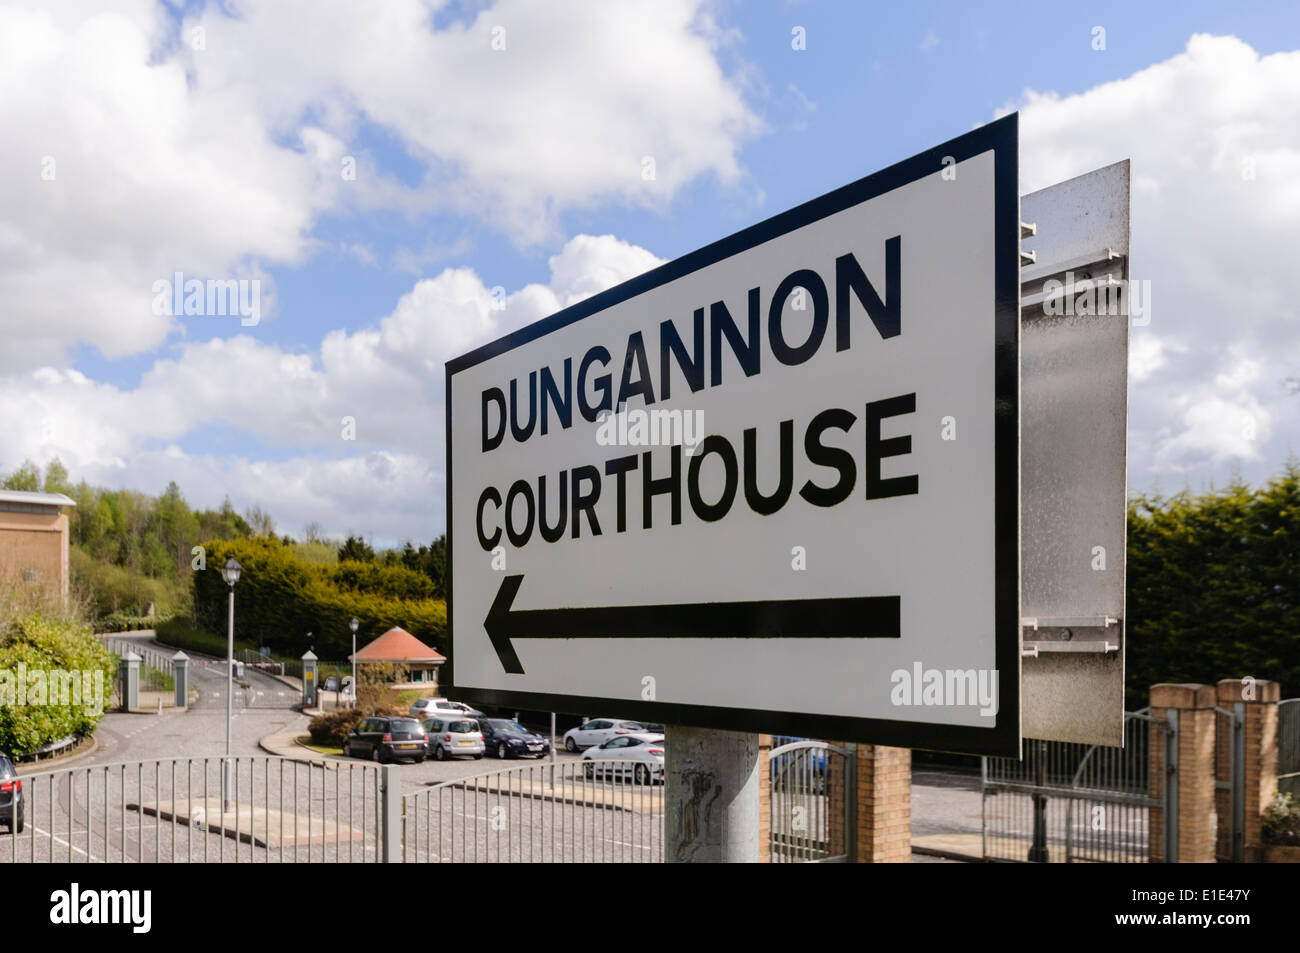 Dungannon Courthouse - Stock Image